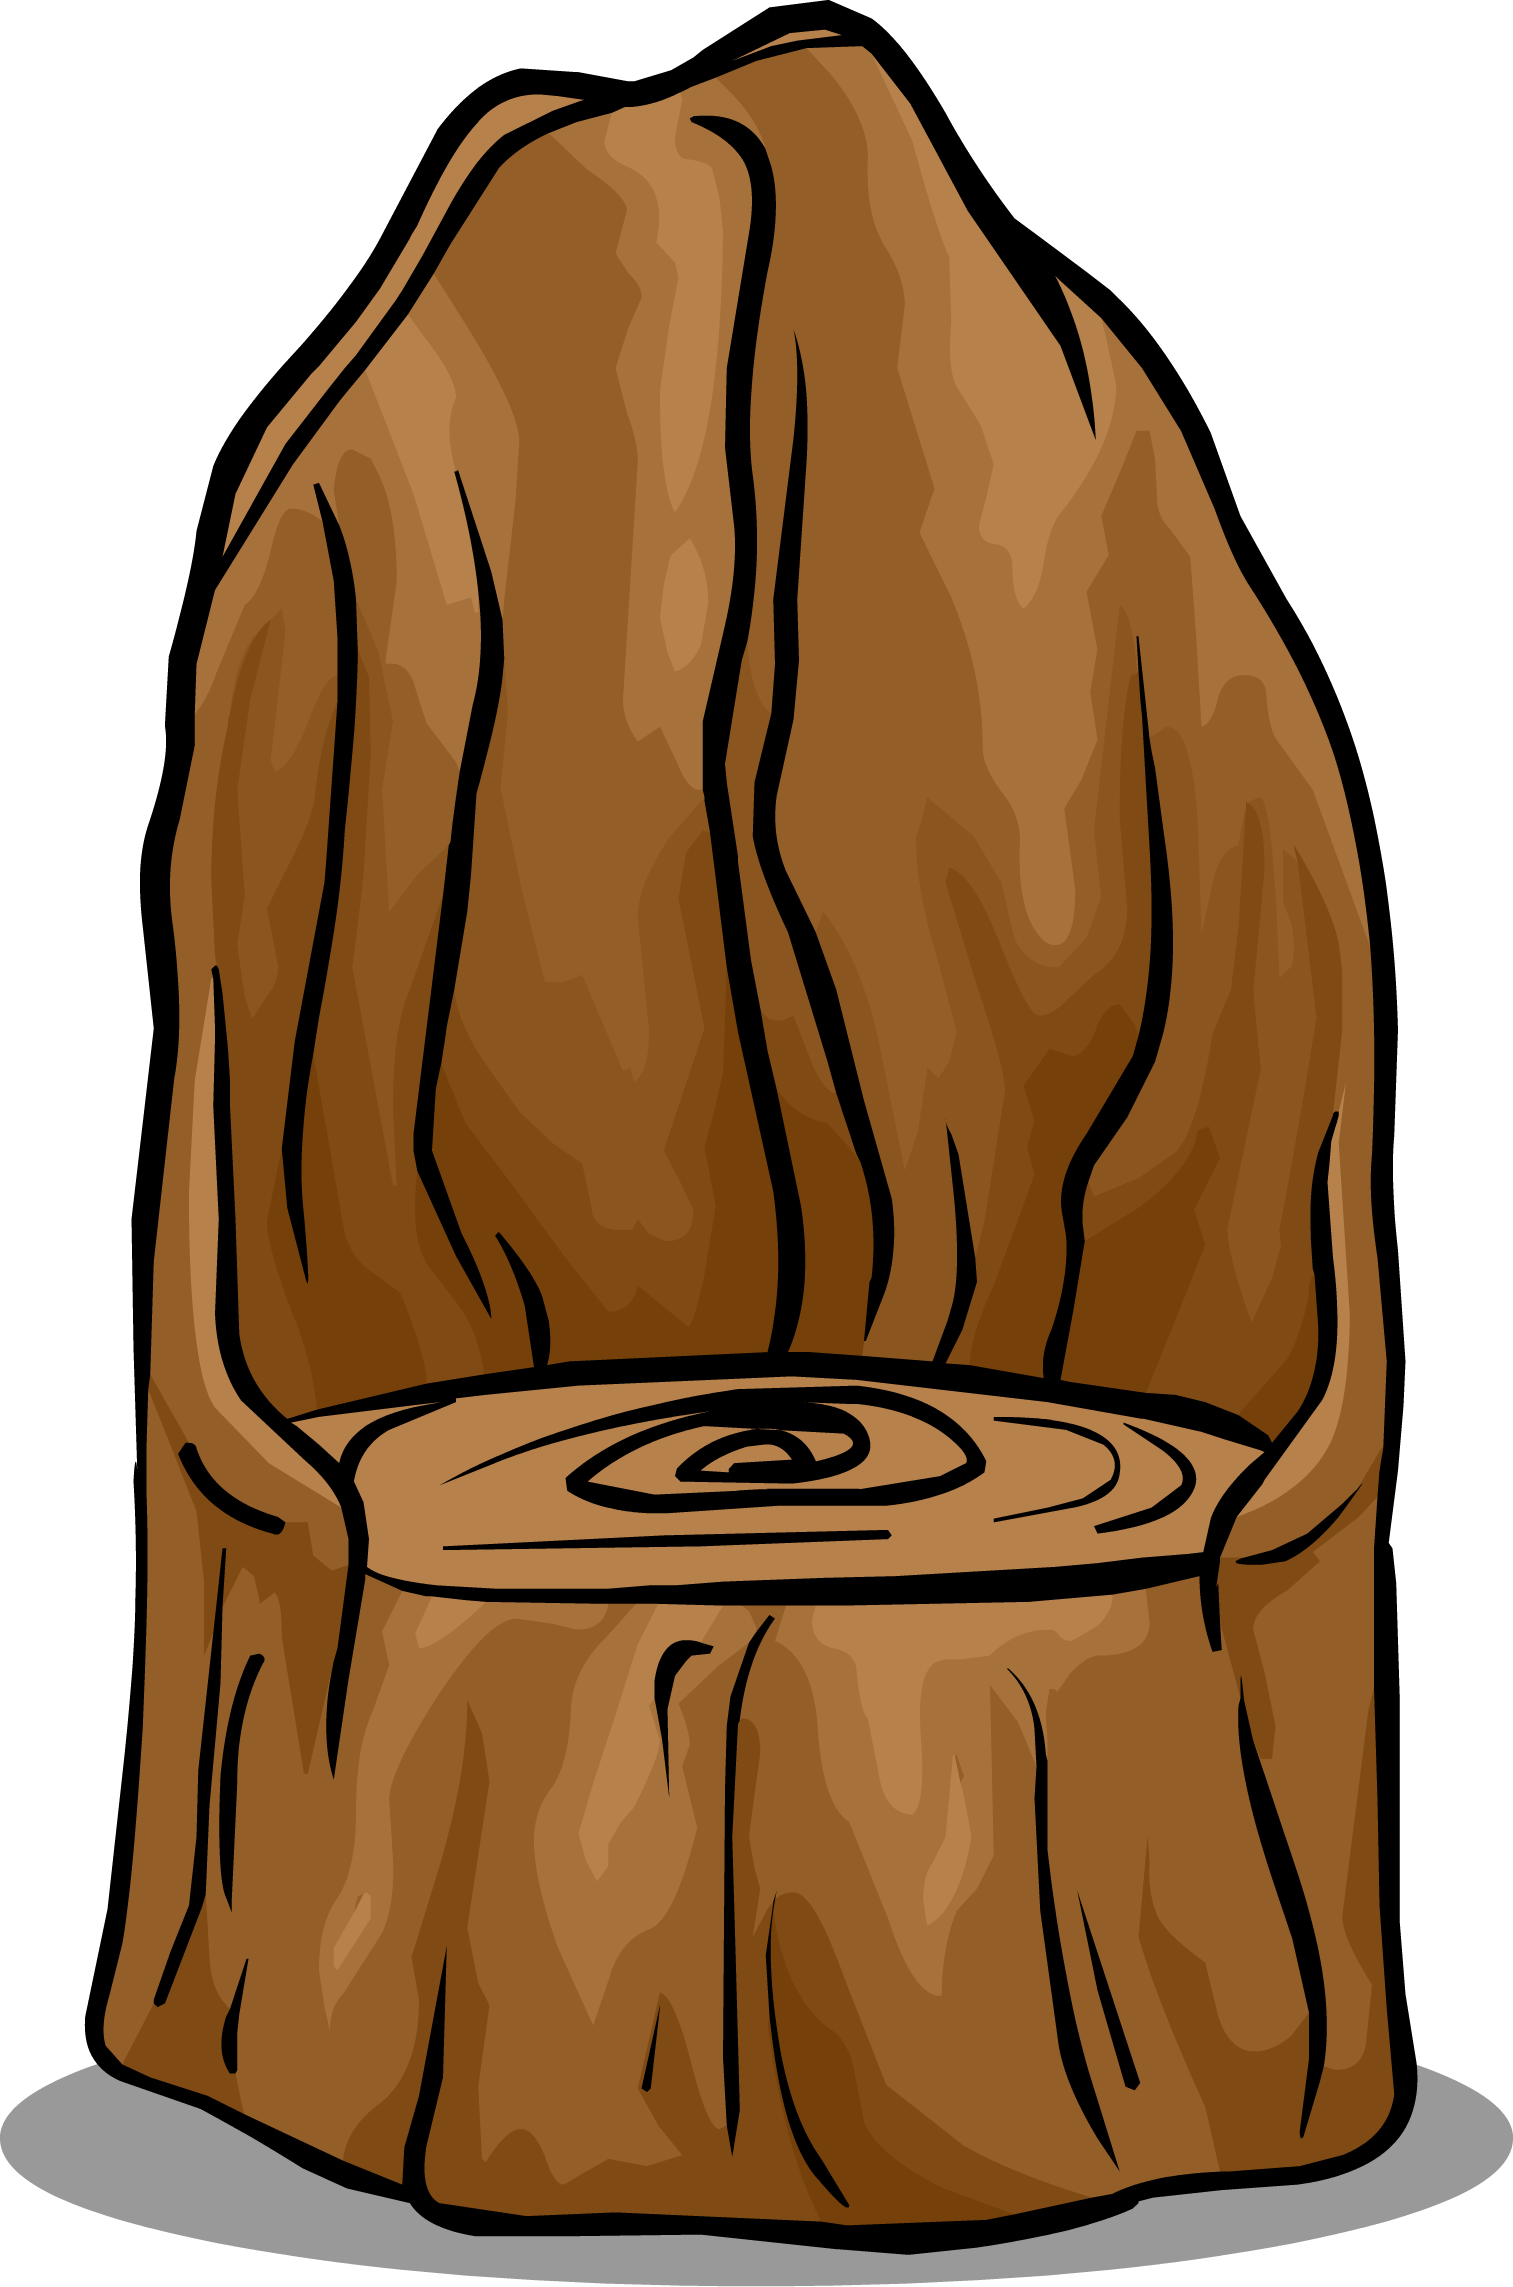 Tree stumps clipart jpg black and white library Tree Stump Chair | Club Penguin Wiki | FANDOM powered by Wikia jpg black and white library